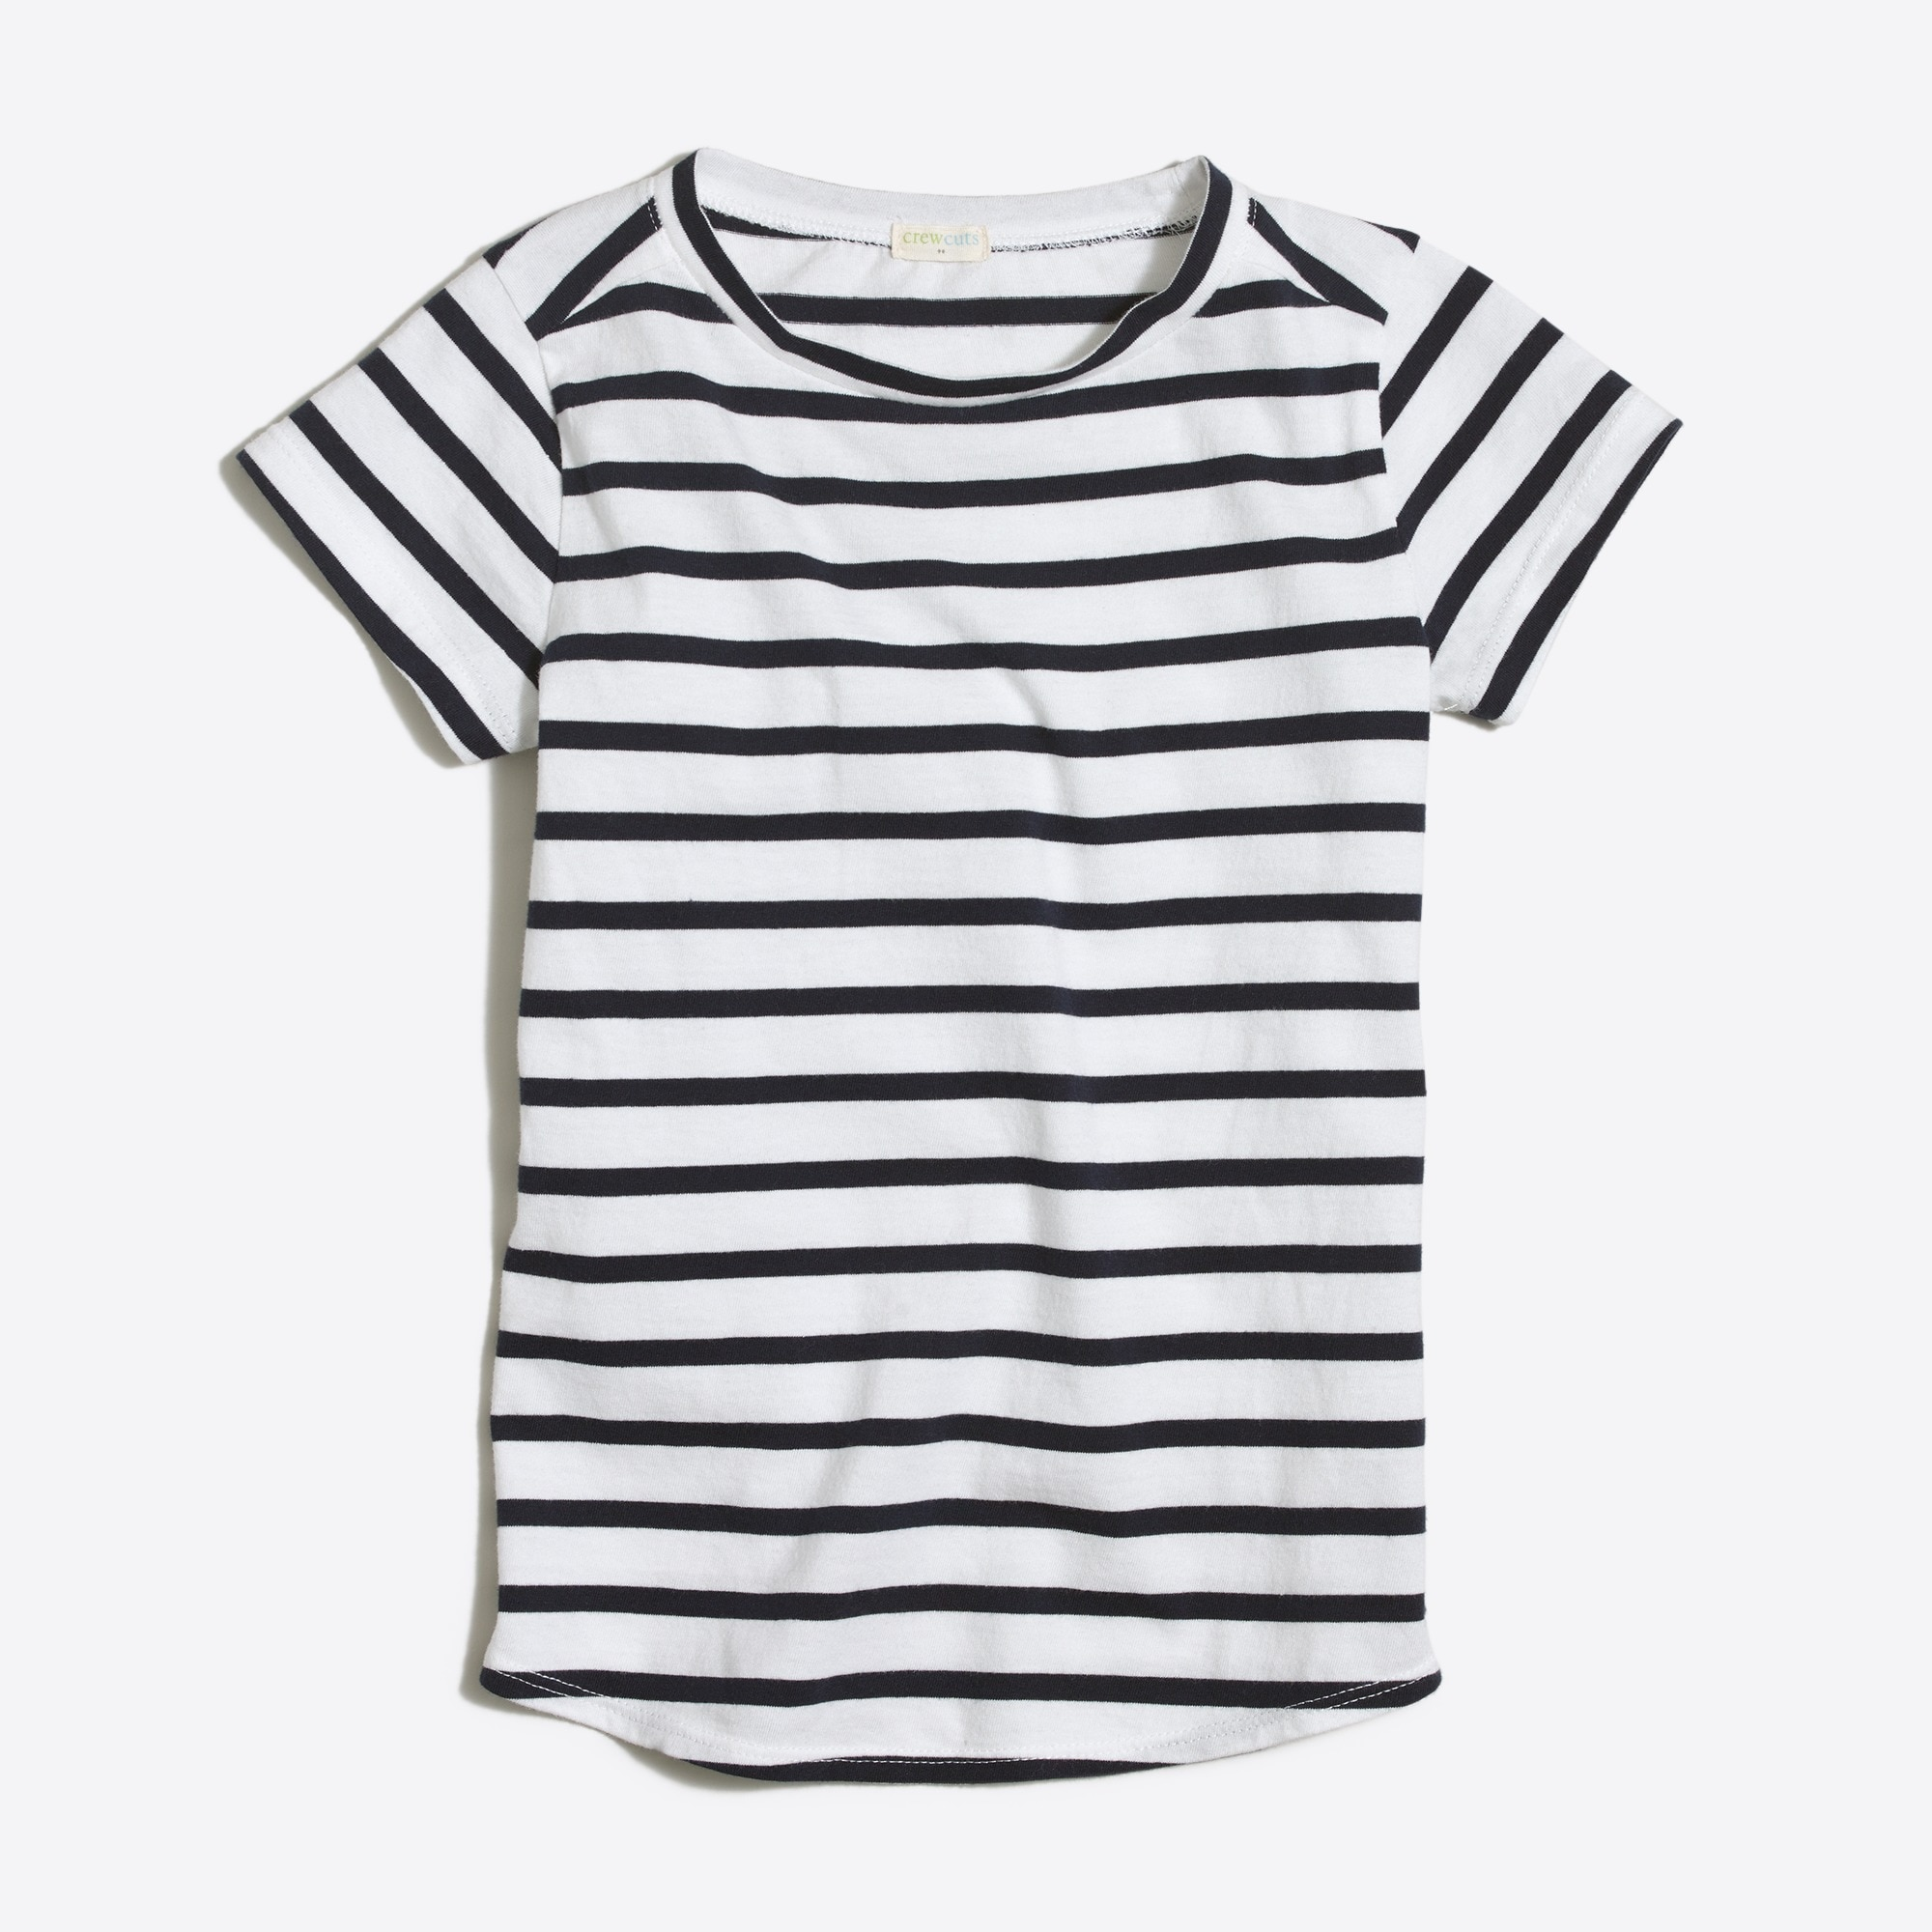 Image 1 for Girls' striped shirttail-hem T-shirt